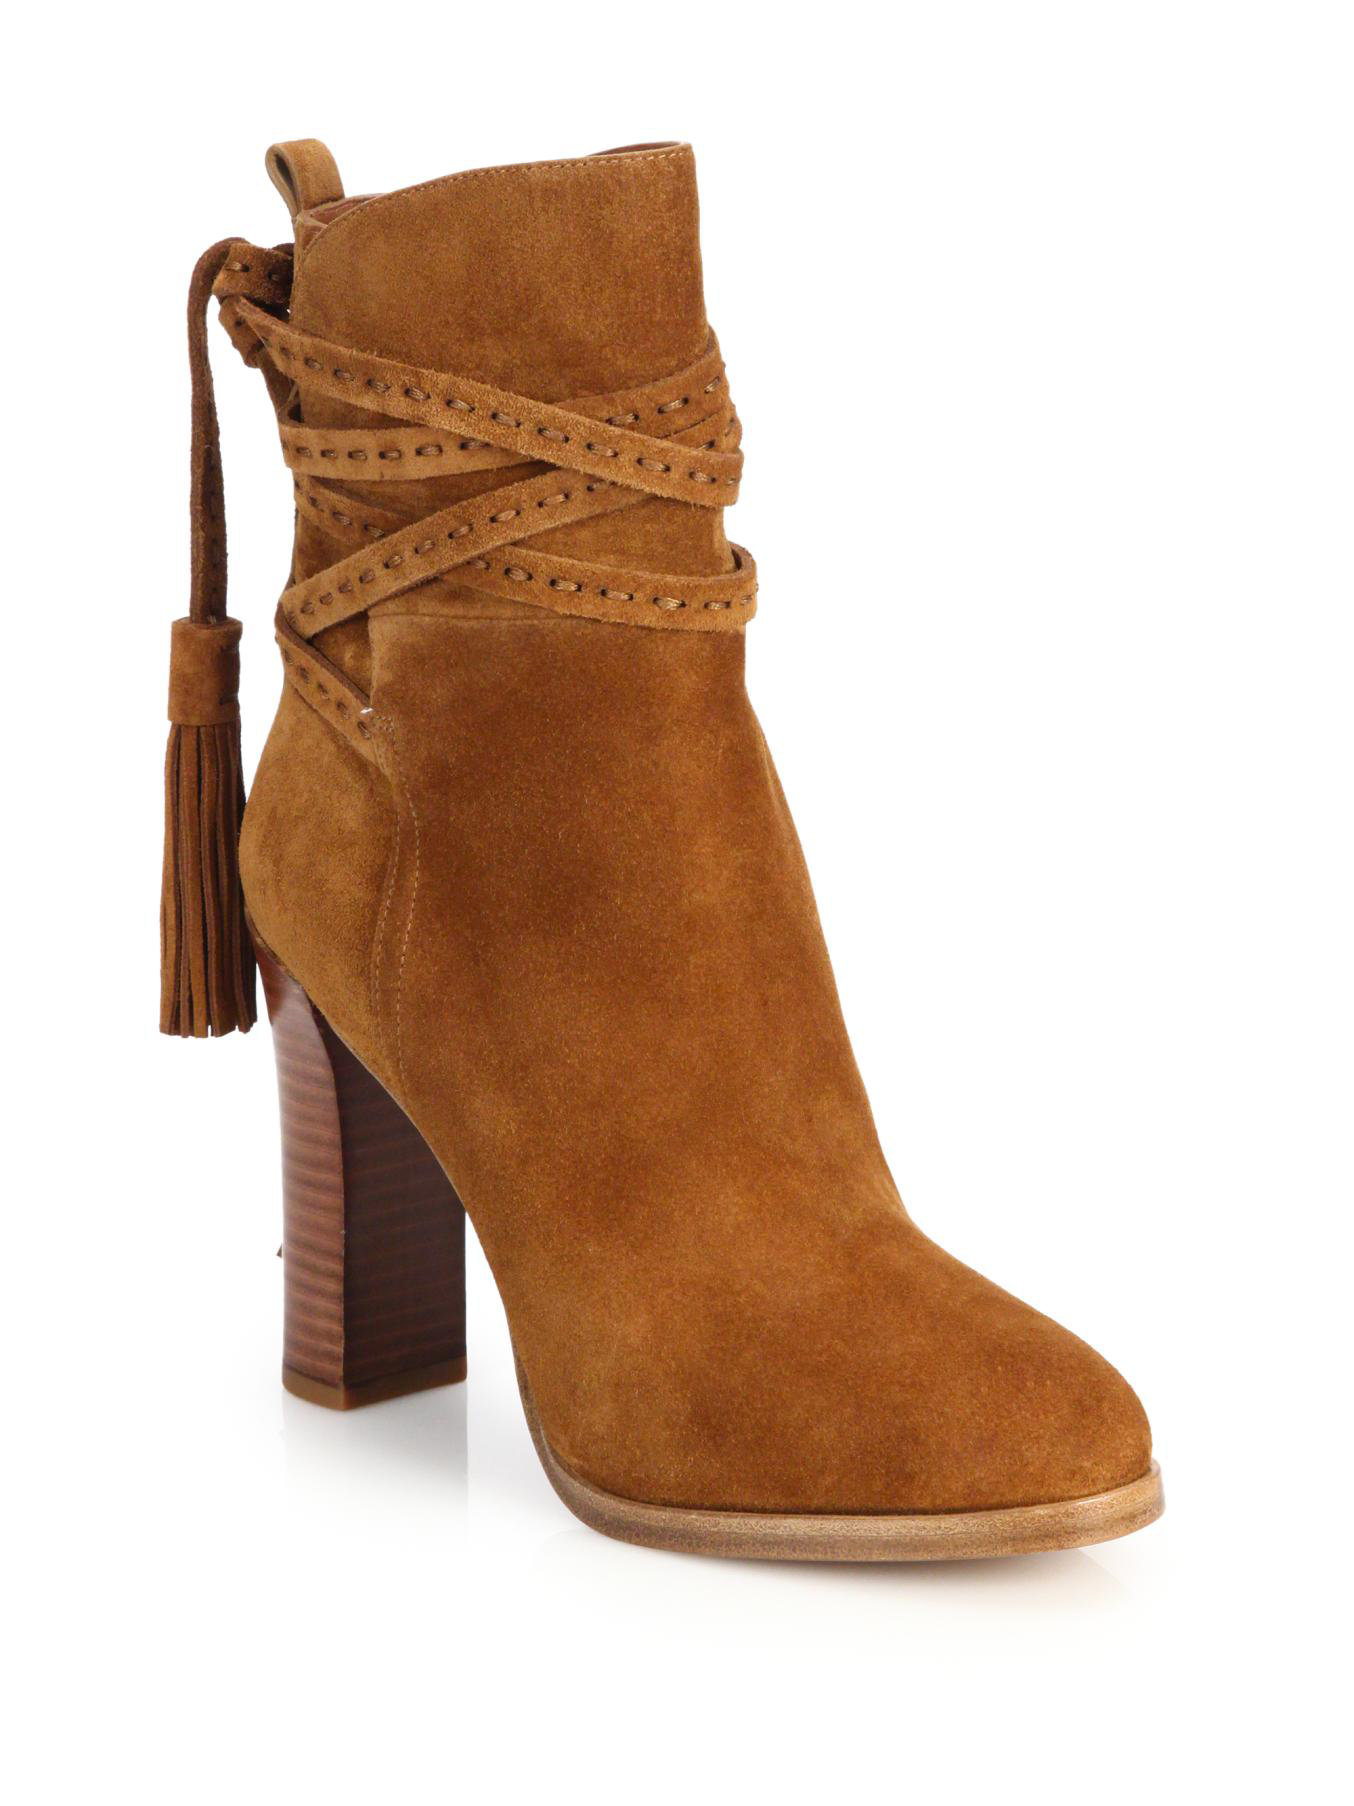 michael kors palmer suede tassel ankle boots in brown lyst